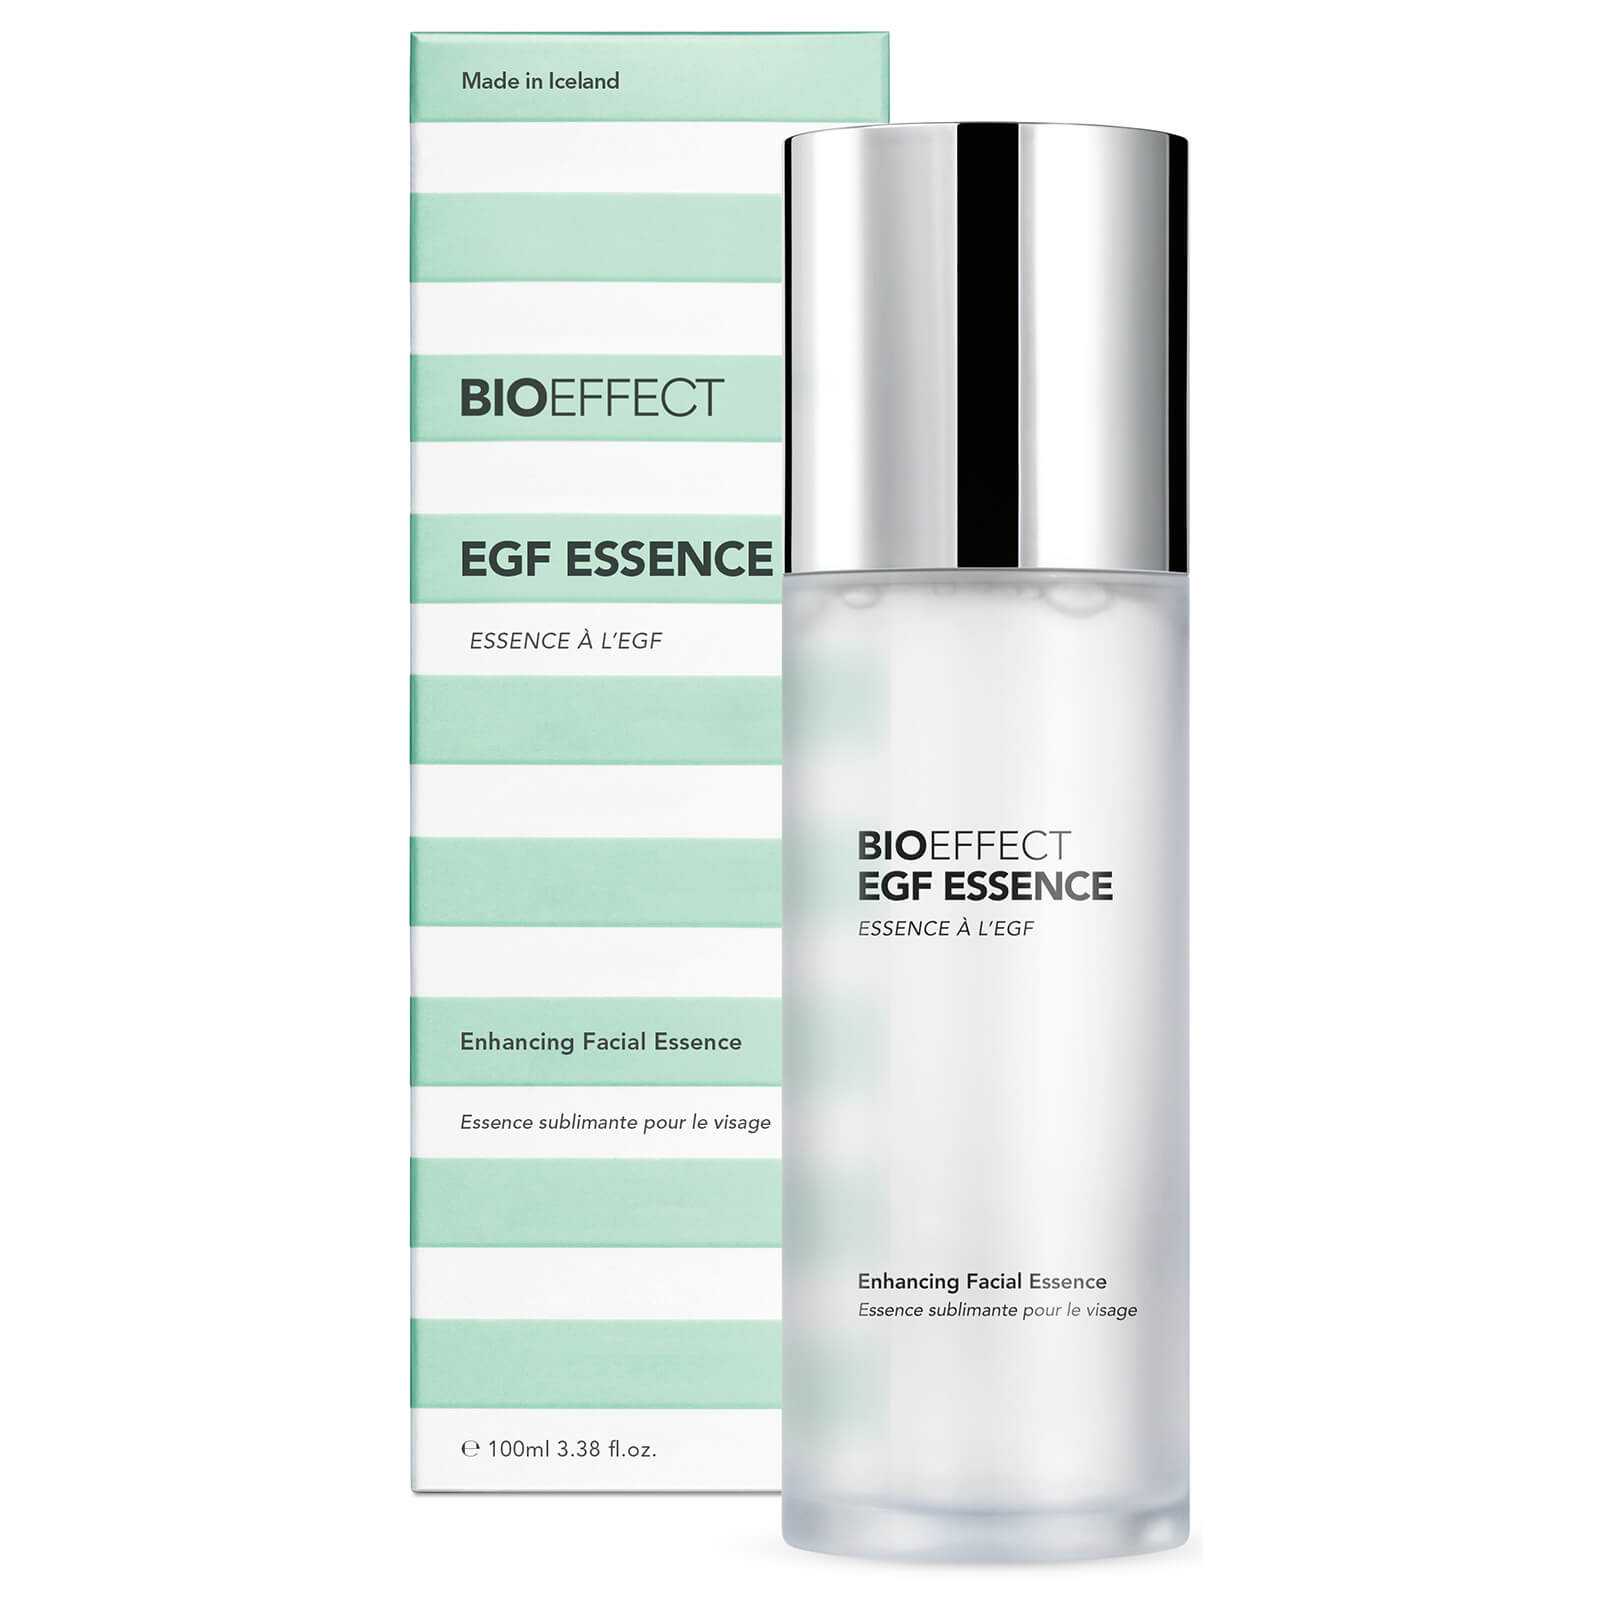 BIOEFFECT EGF Essence 100ml (Worth £83.00)